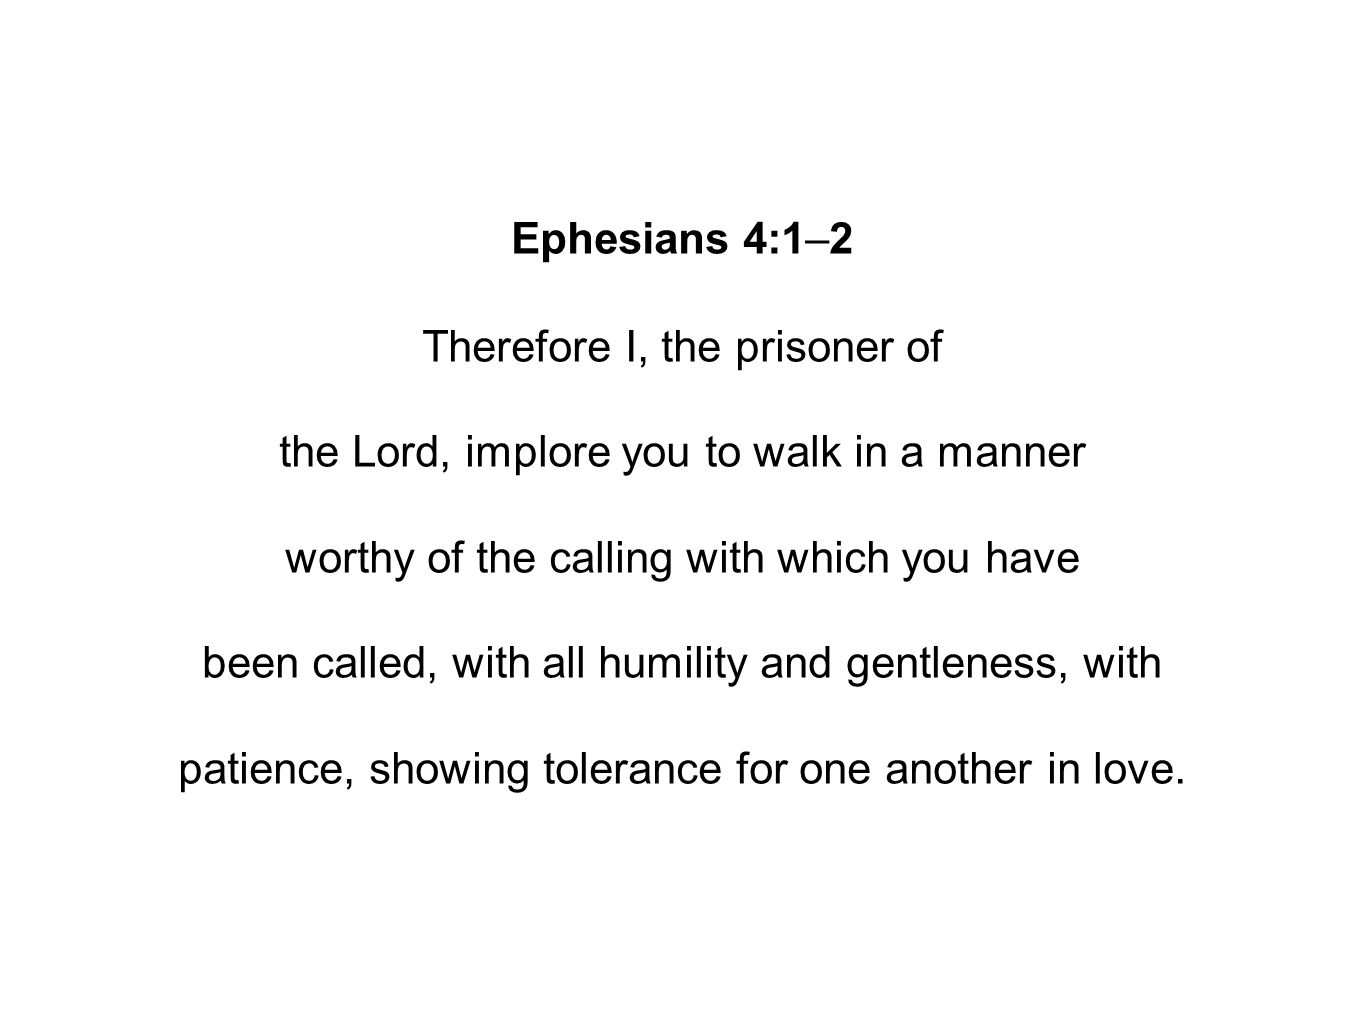 Ephesians 4:1–2 Therefore I, the prisoner of the Lord, implore you to walk in a manner worthy of the calling with which you have been called, with all humility and gentleness, with patience, showing tolerance for one another in love.